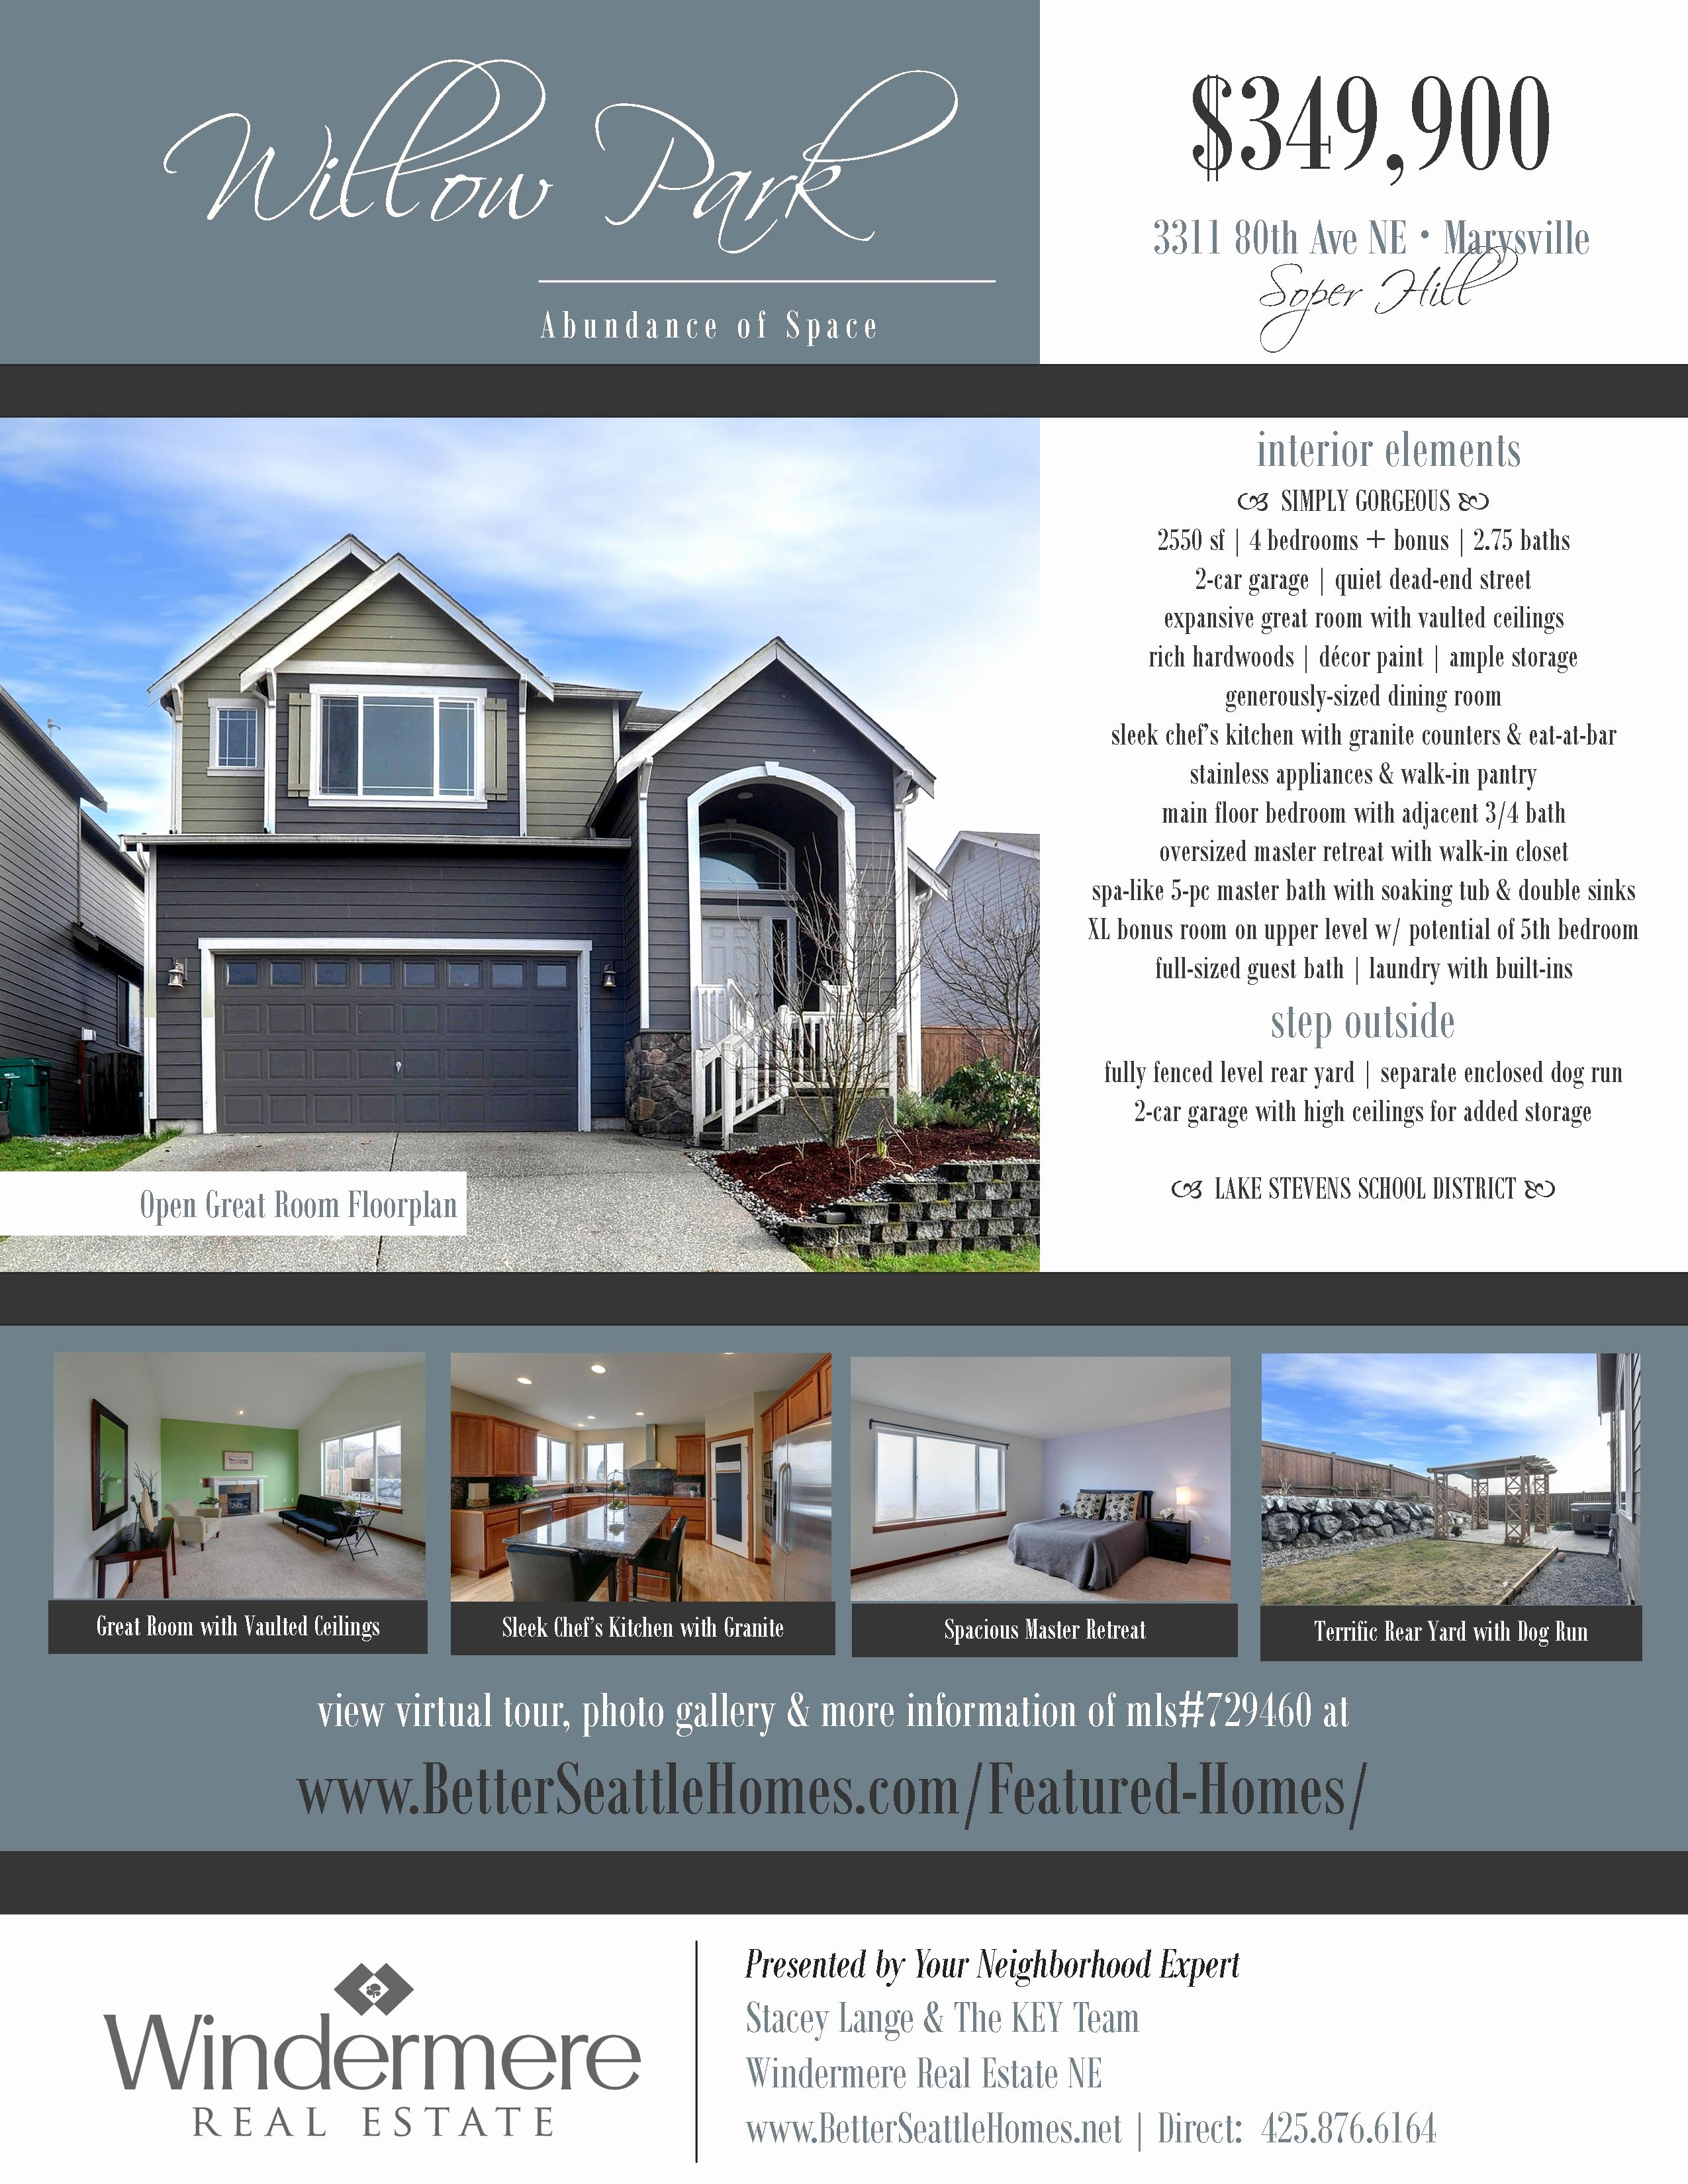 House for Sale Template Fresh 13 Real Estate Flyer Templates Excel Pdf formats